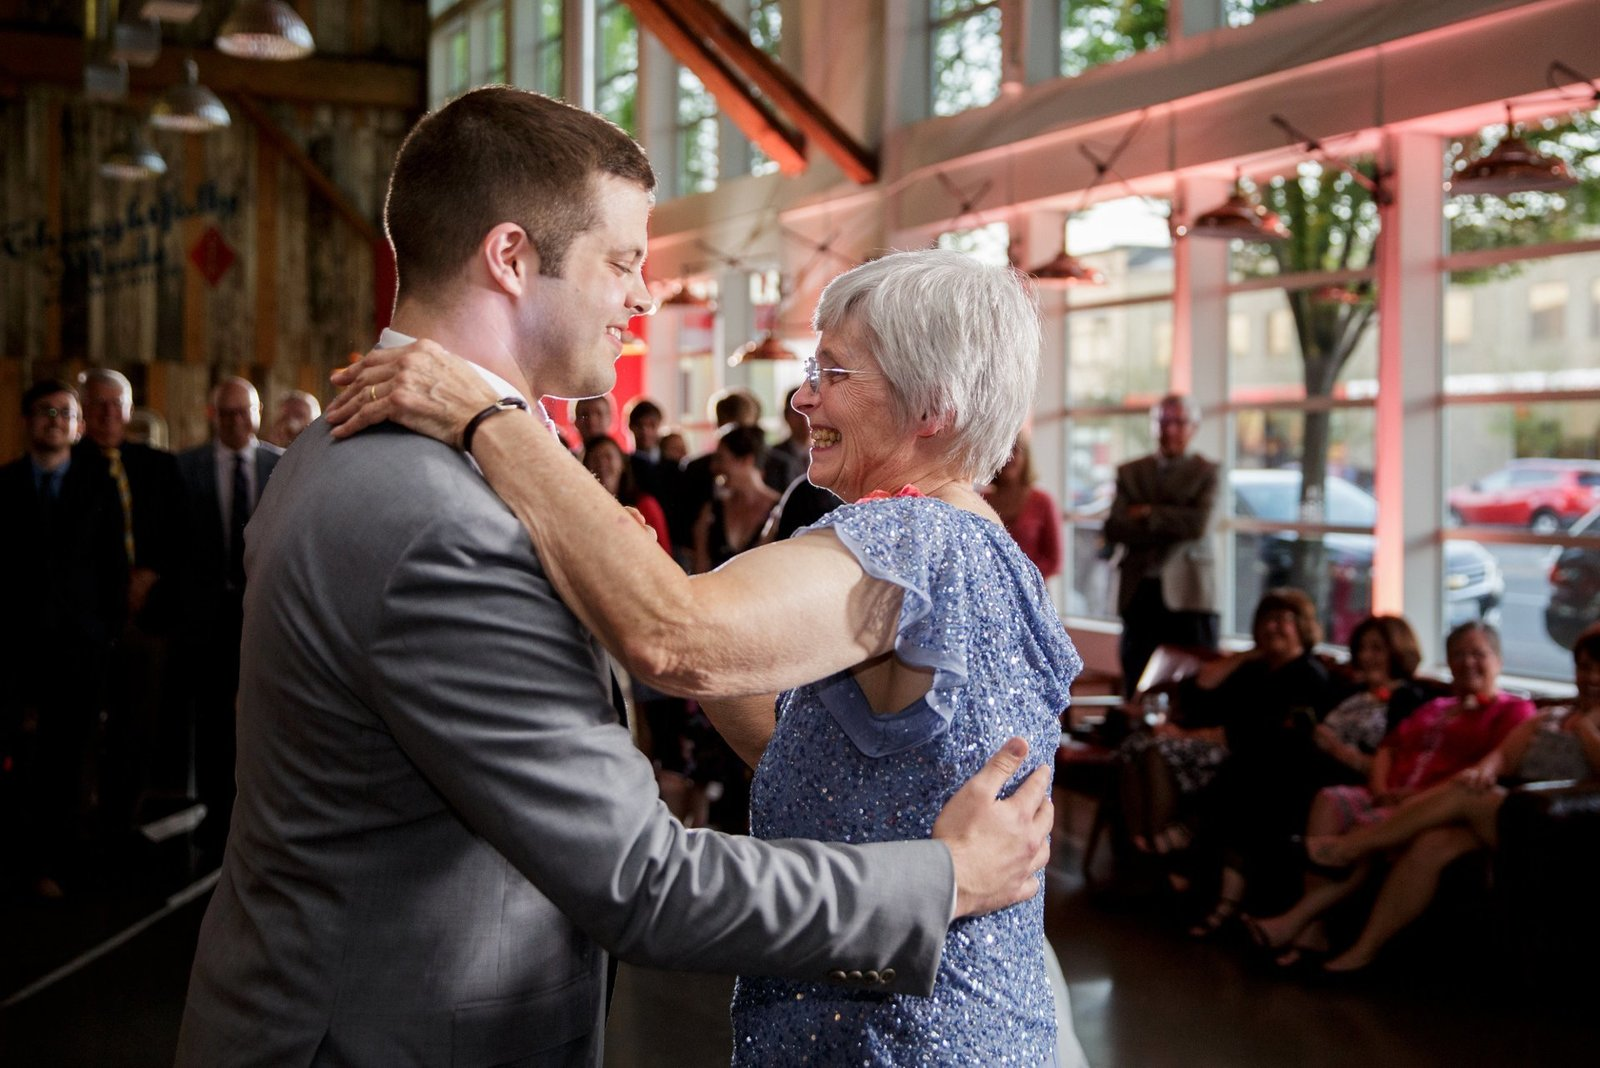 mother-son-wedding-dance-atlanta